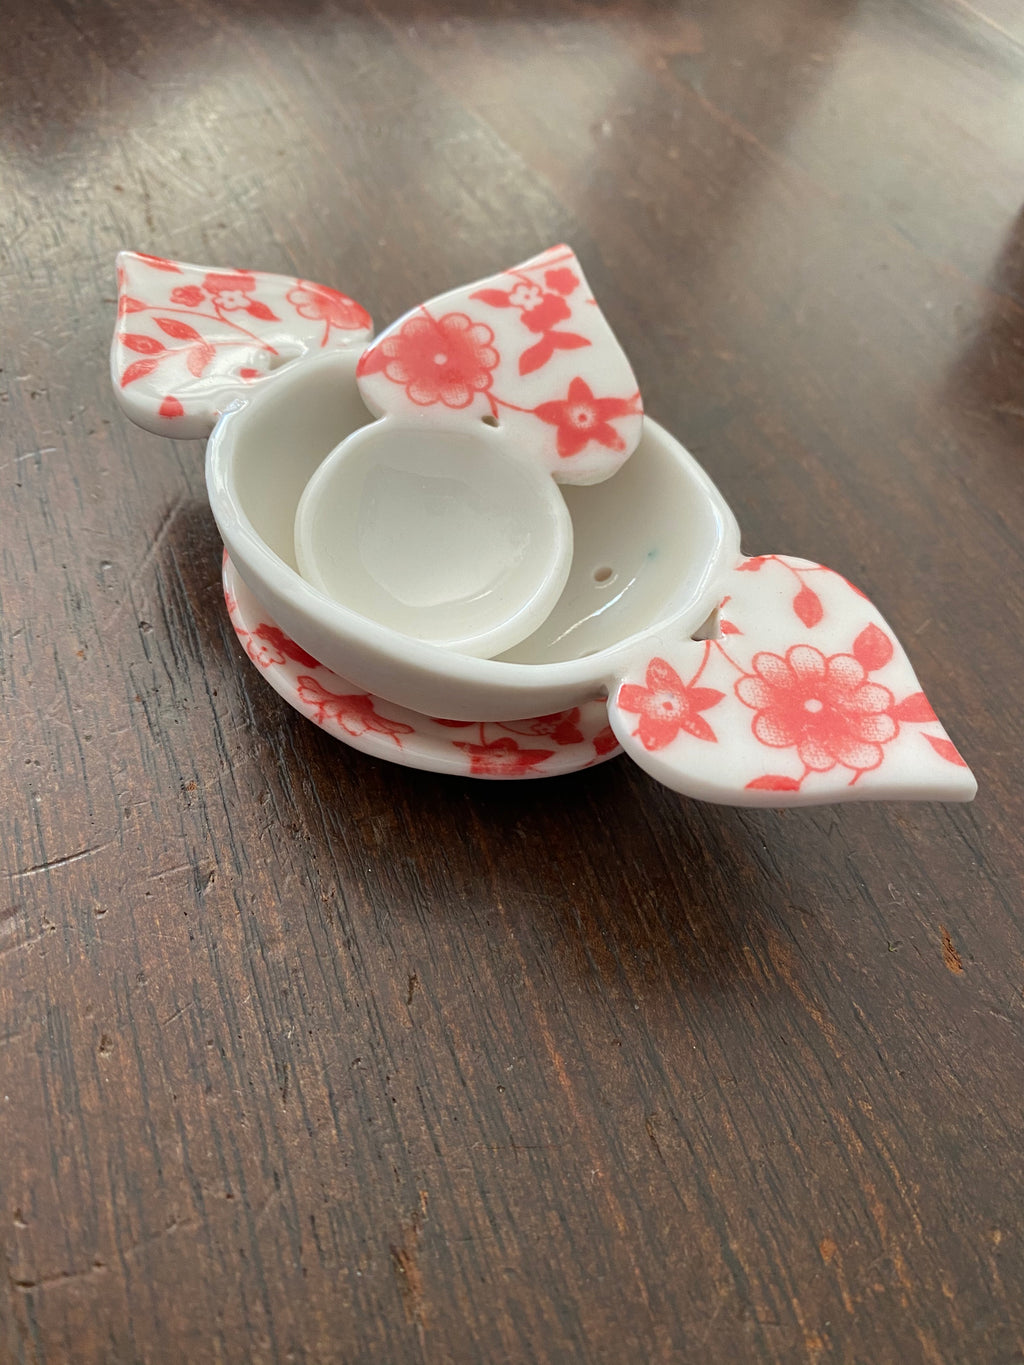 Tea Strainer 3 piece ceramic set - red floral